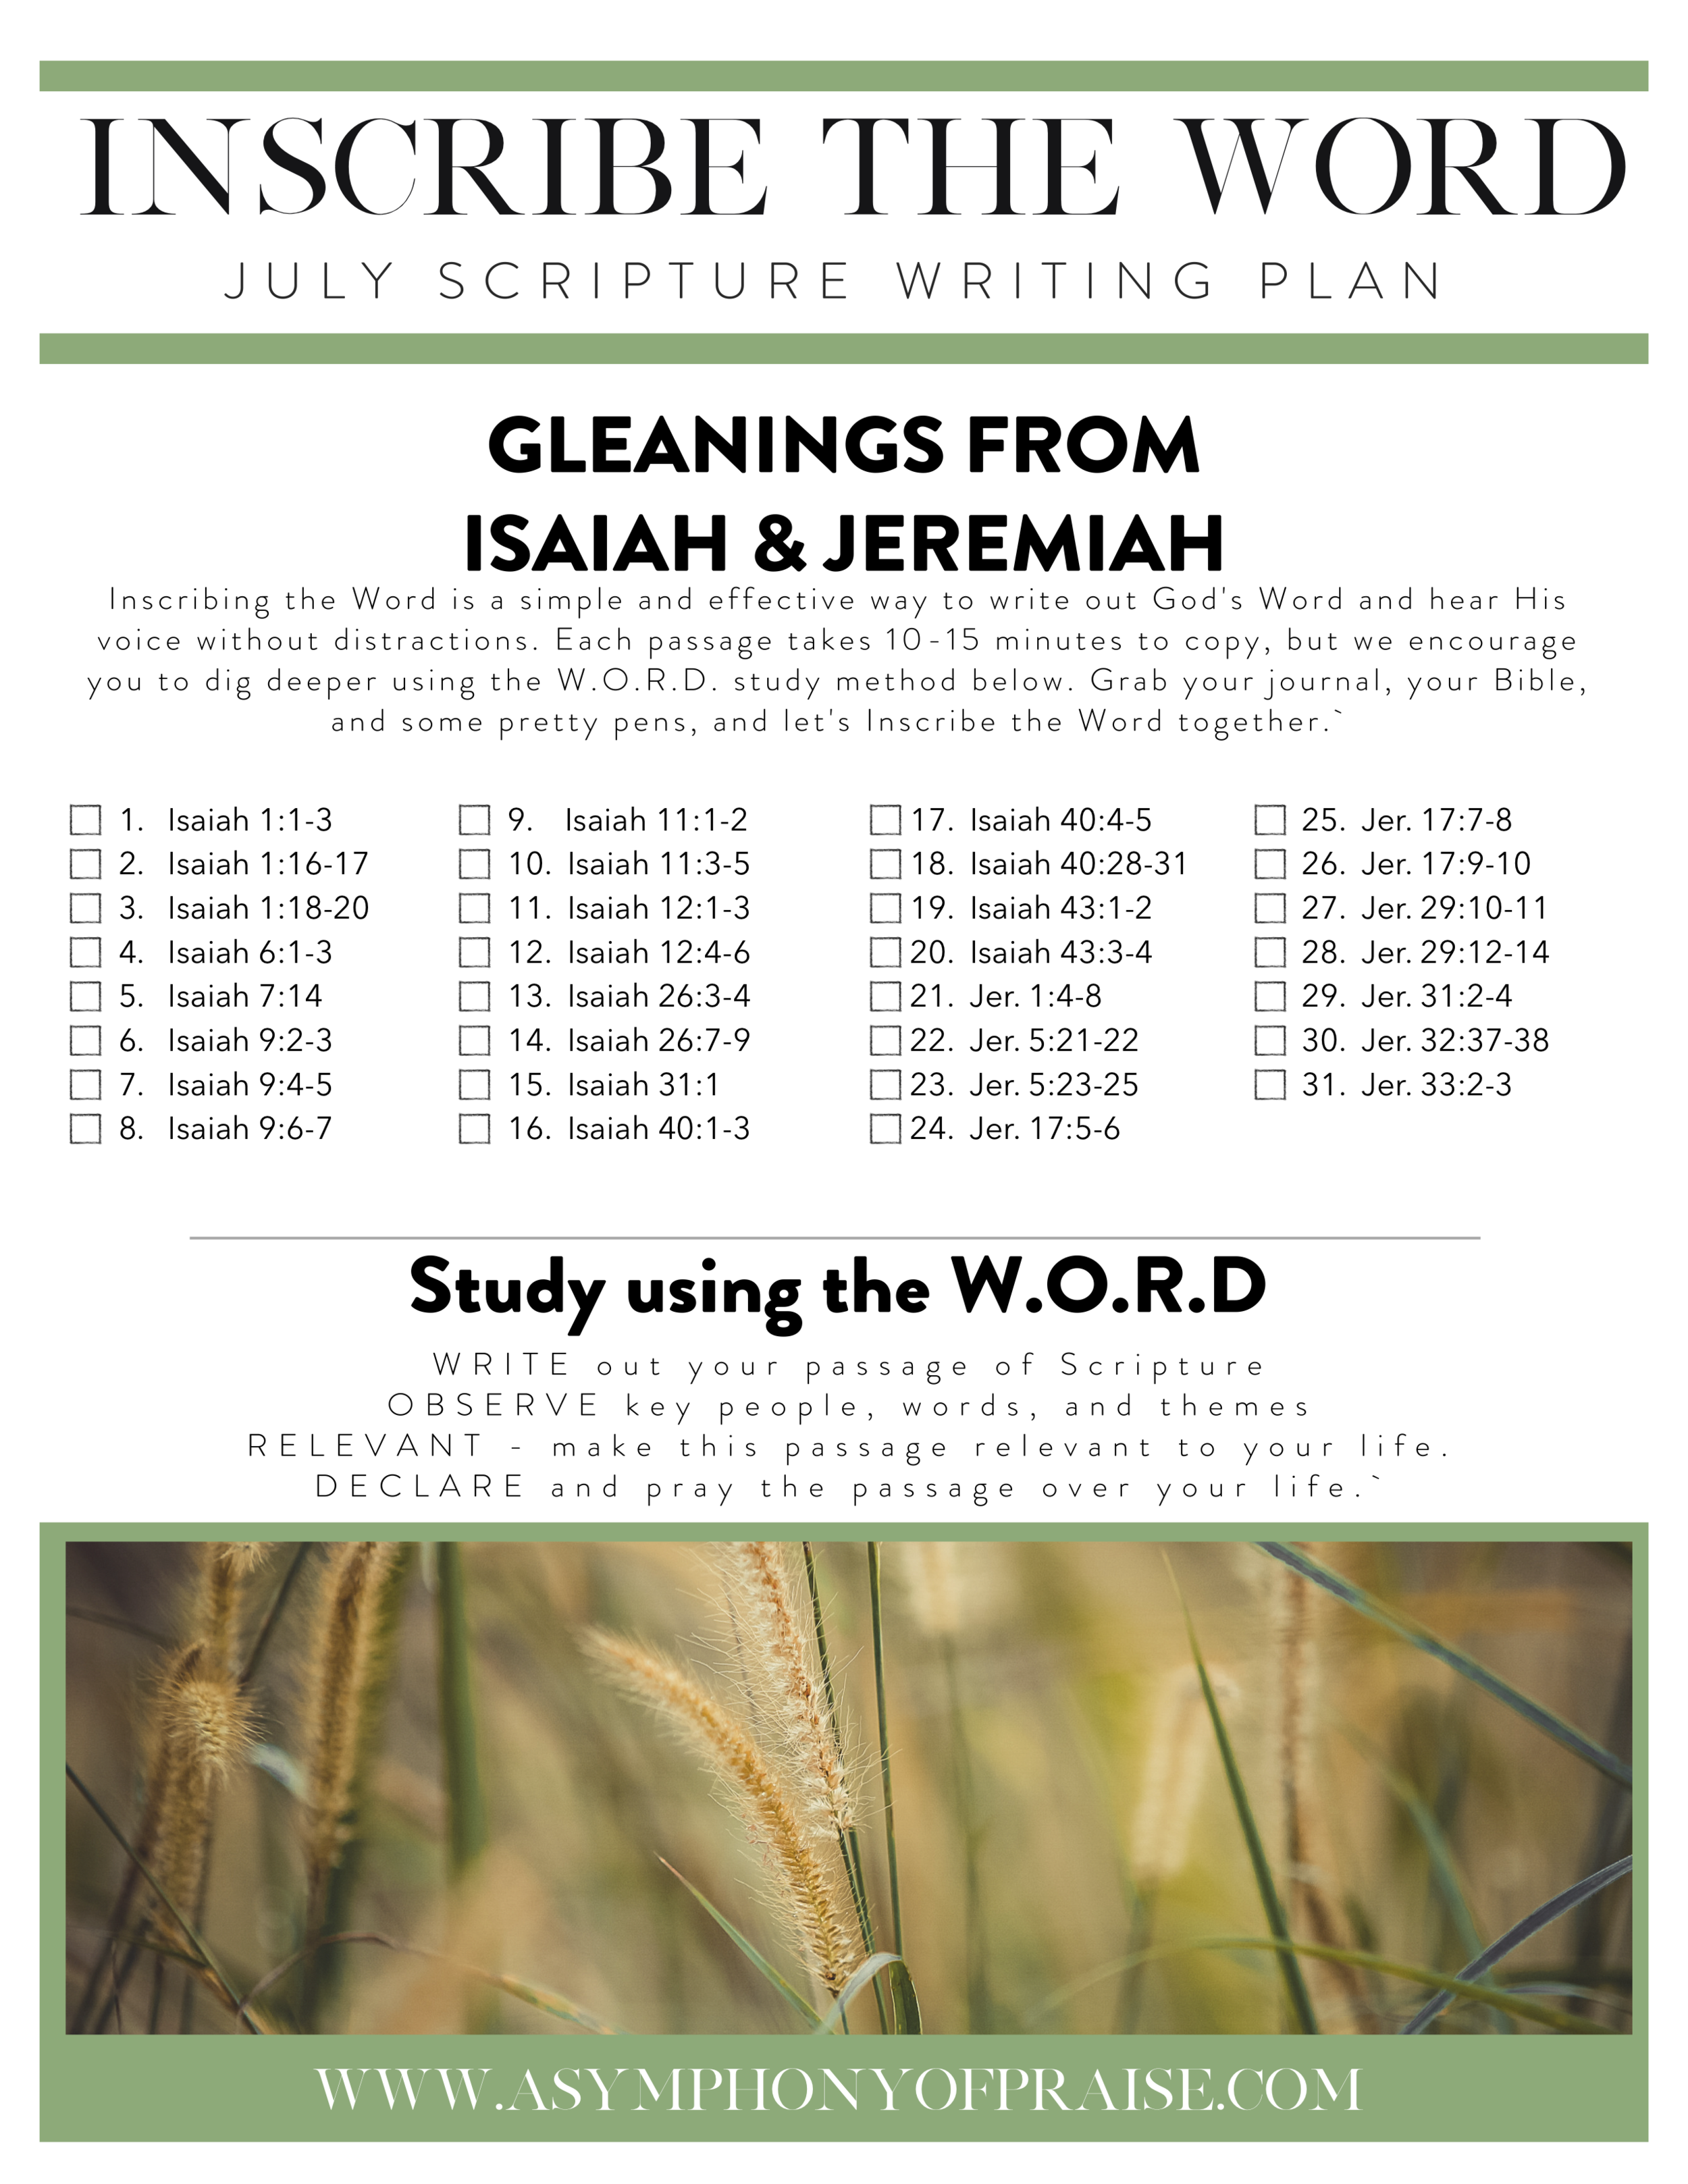 Our July Scripture Writing Plan is here and we are so excited to write through two of the major prophets; Isaiah and Jeremiah. As we continue to Write through the Bible this year, I encourage you not to pass up these Prophetic Books of the Old Testament. Inside you will find a treasure. Join us for this month's Bible Study Plan and get ready to Inscribe the Word as we Inscribe Isaiah and Jeremiah.